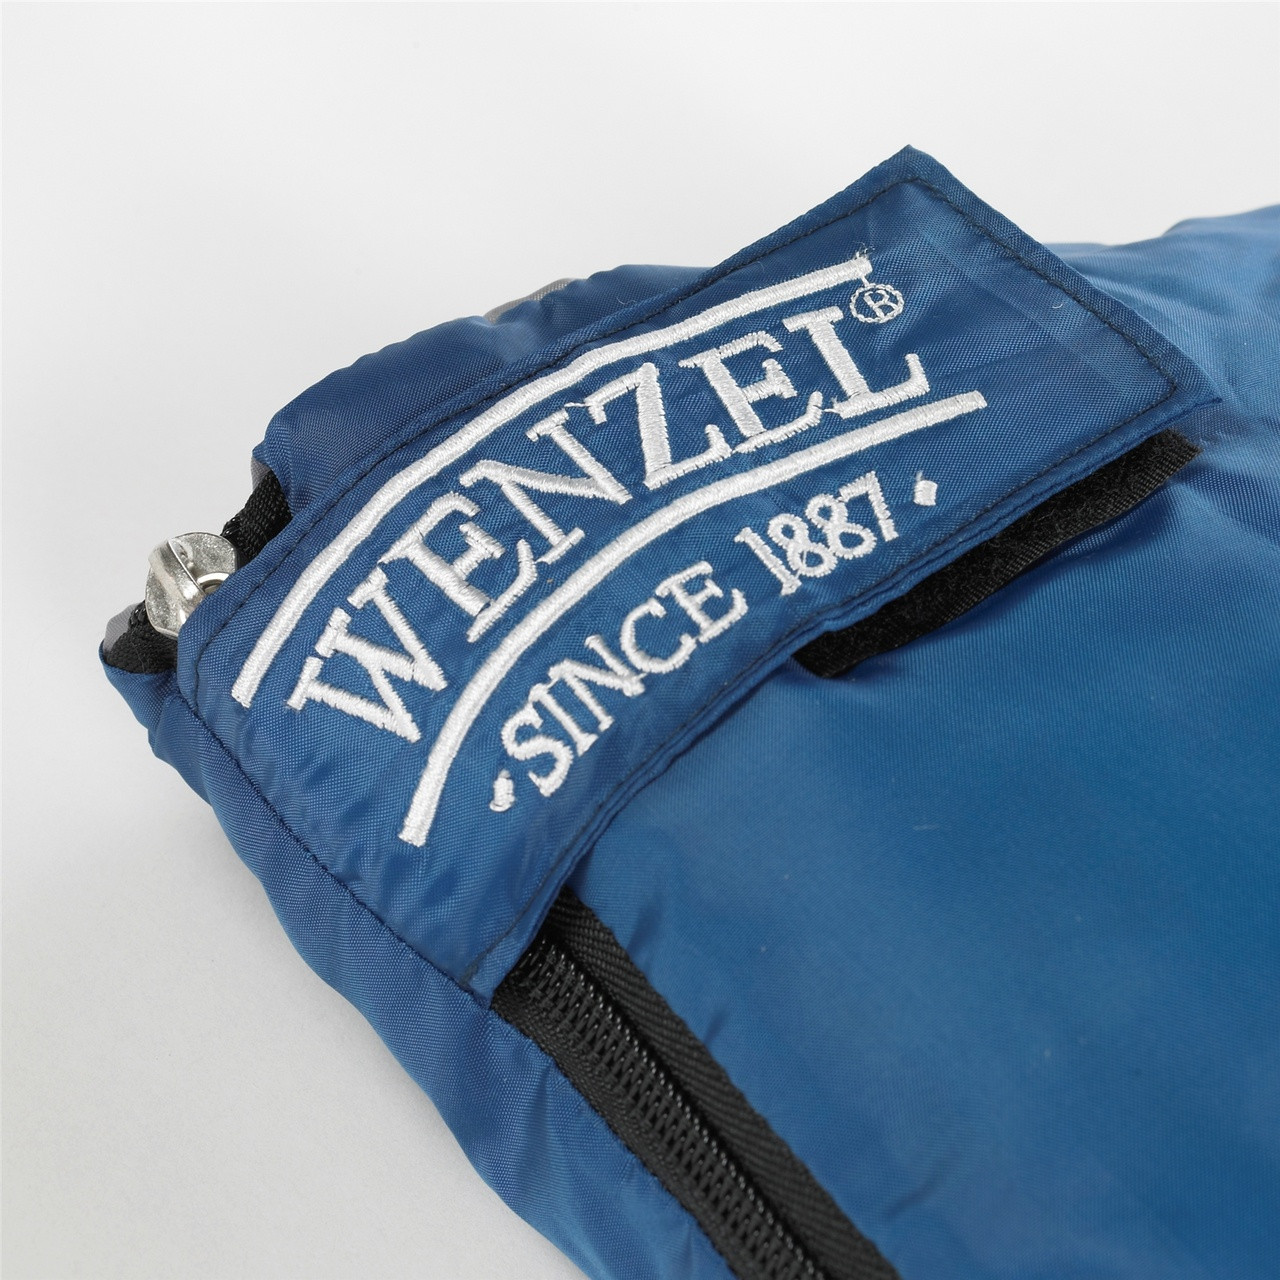 Close up view of the zipper latch on the Wenzel Sunward 30 degree sleeping bag showing 'Wenzel since 1887' text